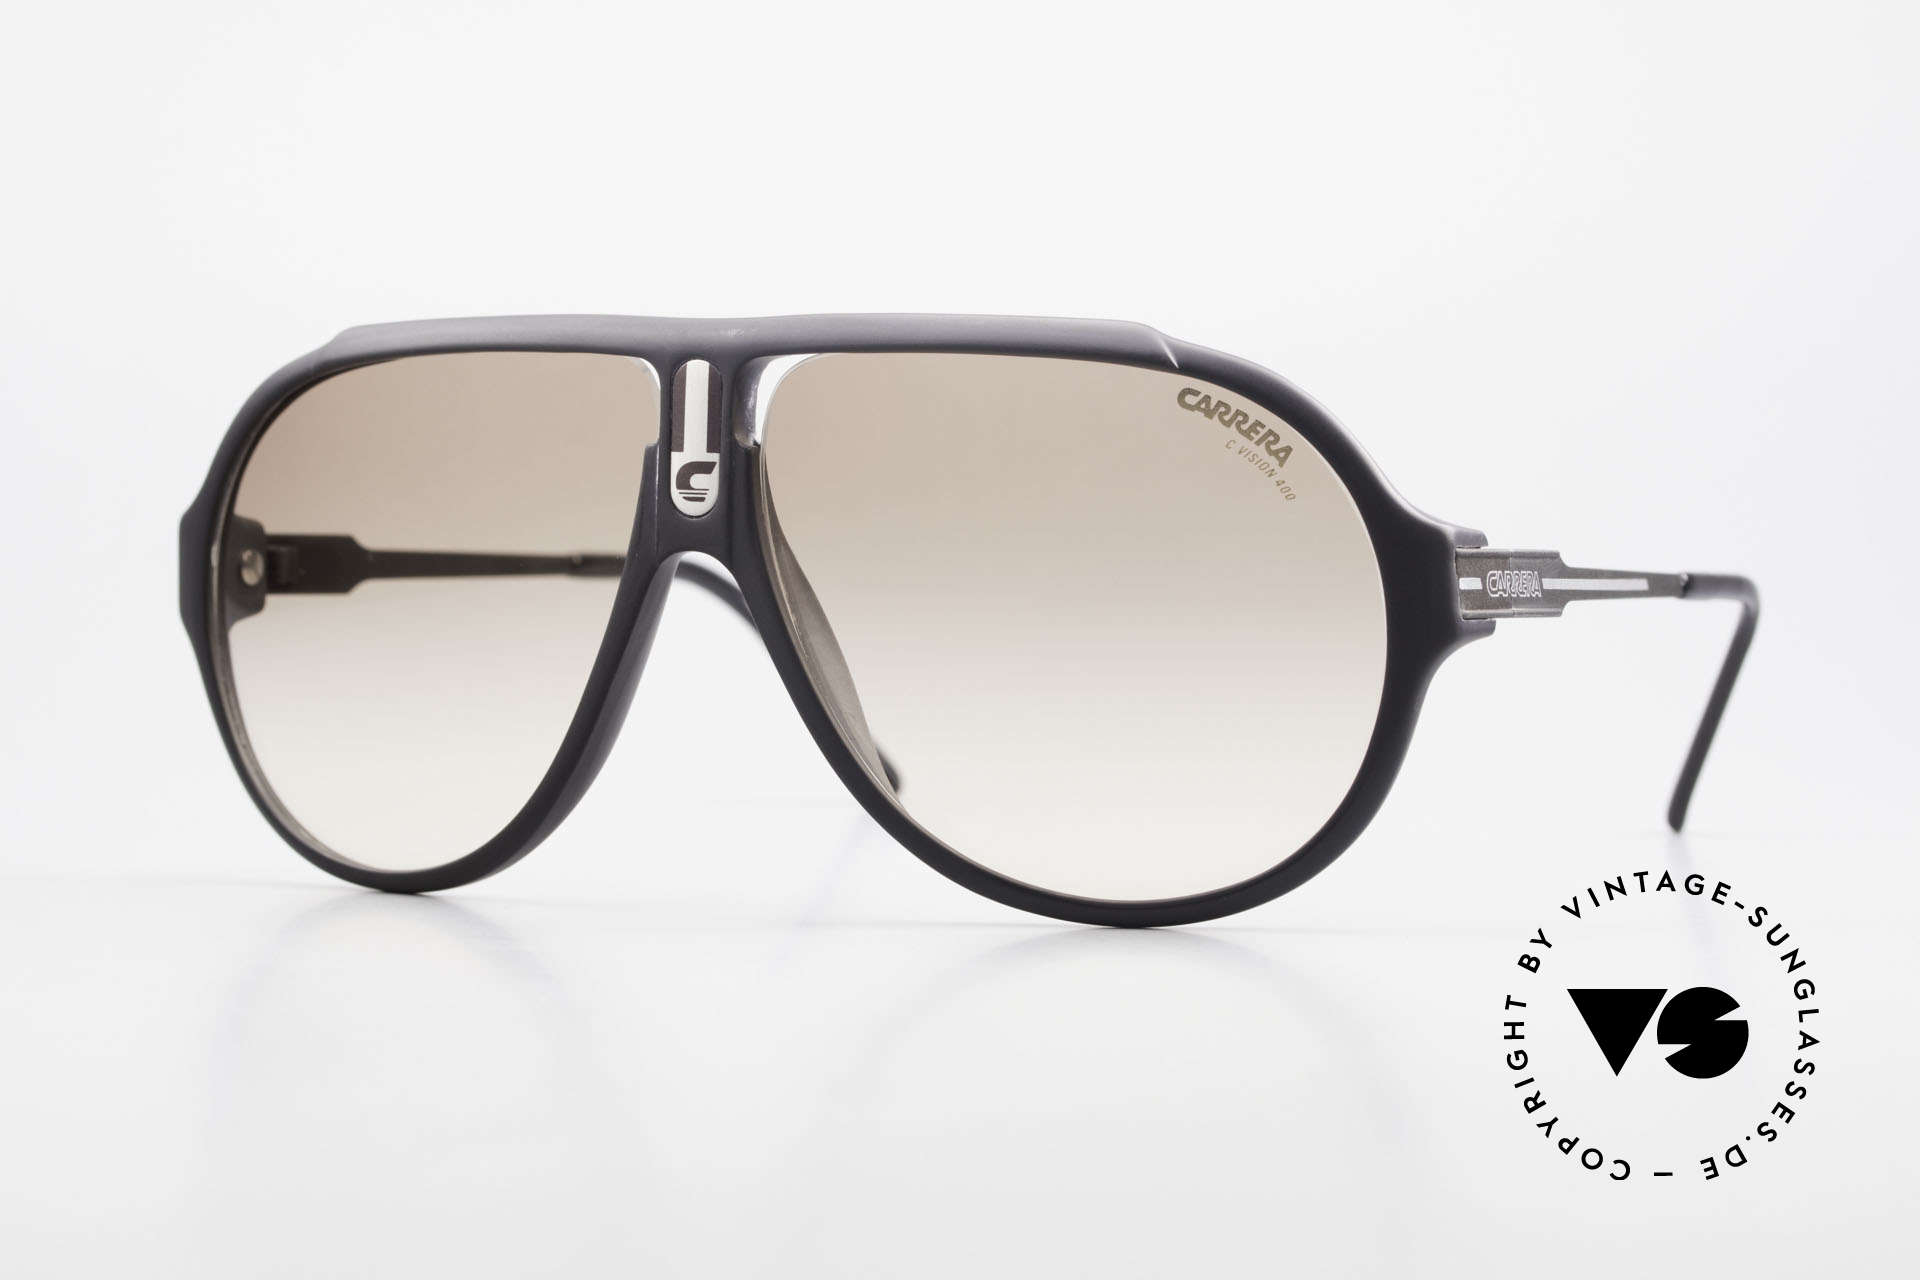 Carrera 5565 Old Sunglasses 1980's Vintage, CARRERA 5565 = a design classic from the mid 1980's, Made for Men and Women